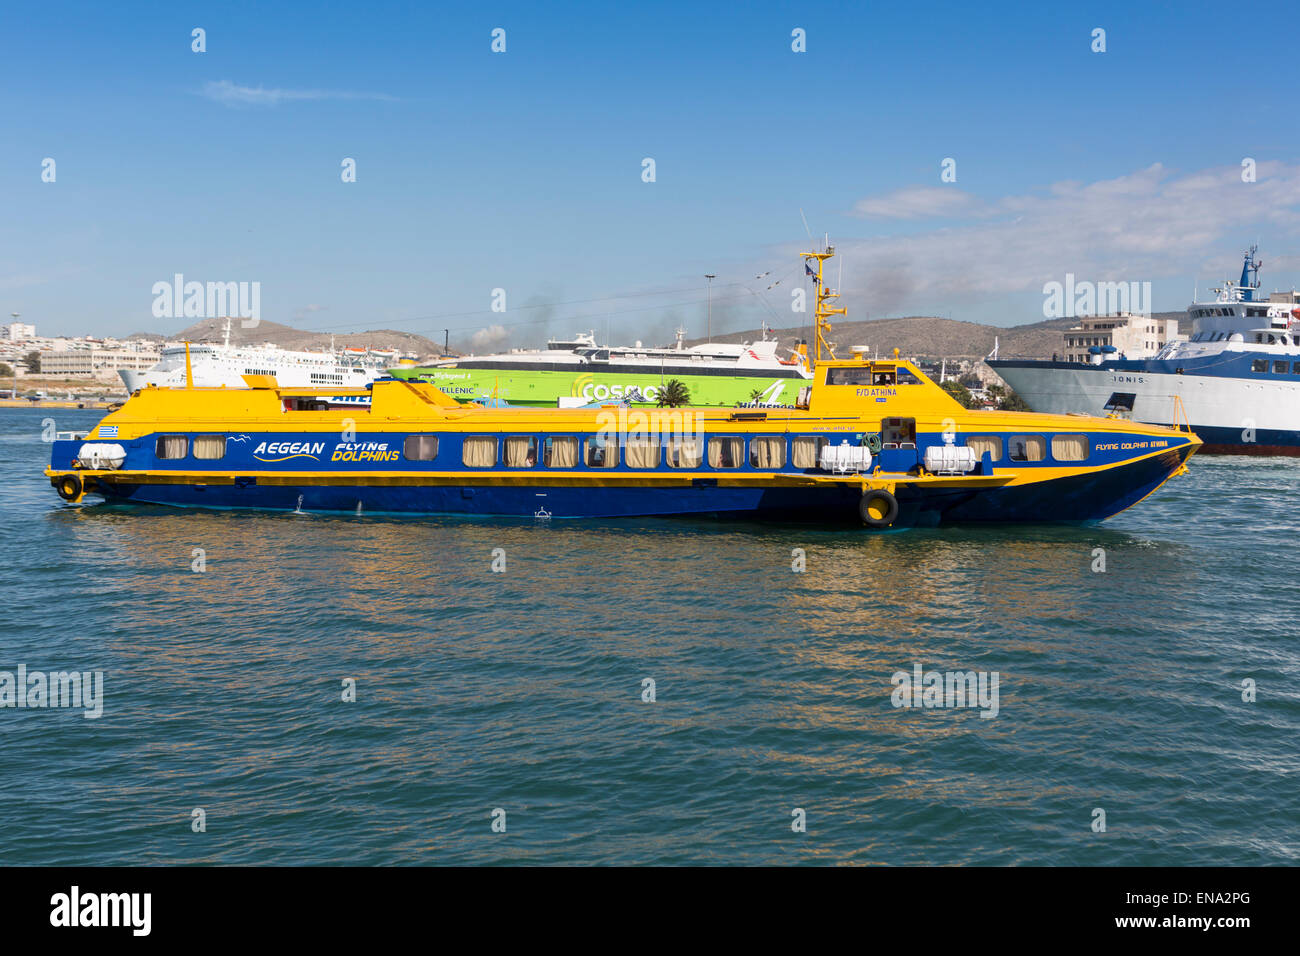 The hydrofoil ferry Flying Dolphin Athina (IMO 8859184) from Aegean Flying Dolphins arrives at Piraeus harbour. - Stock Image